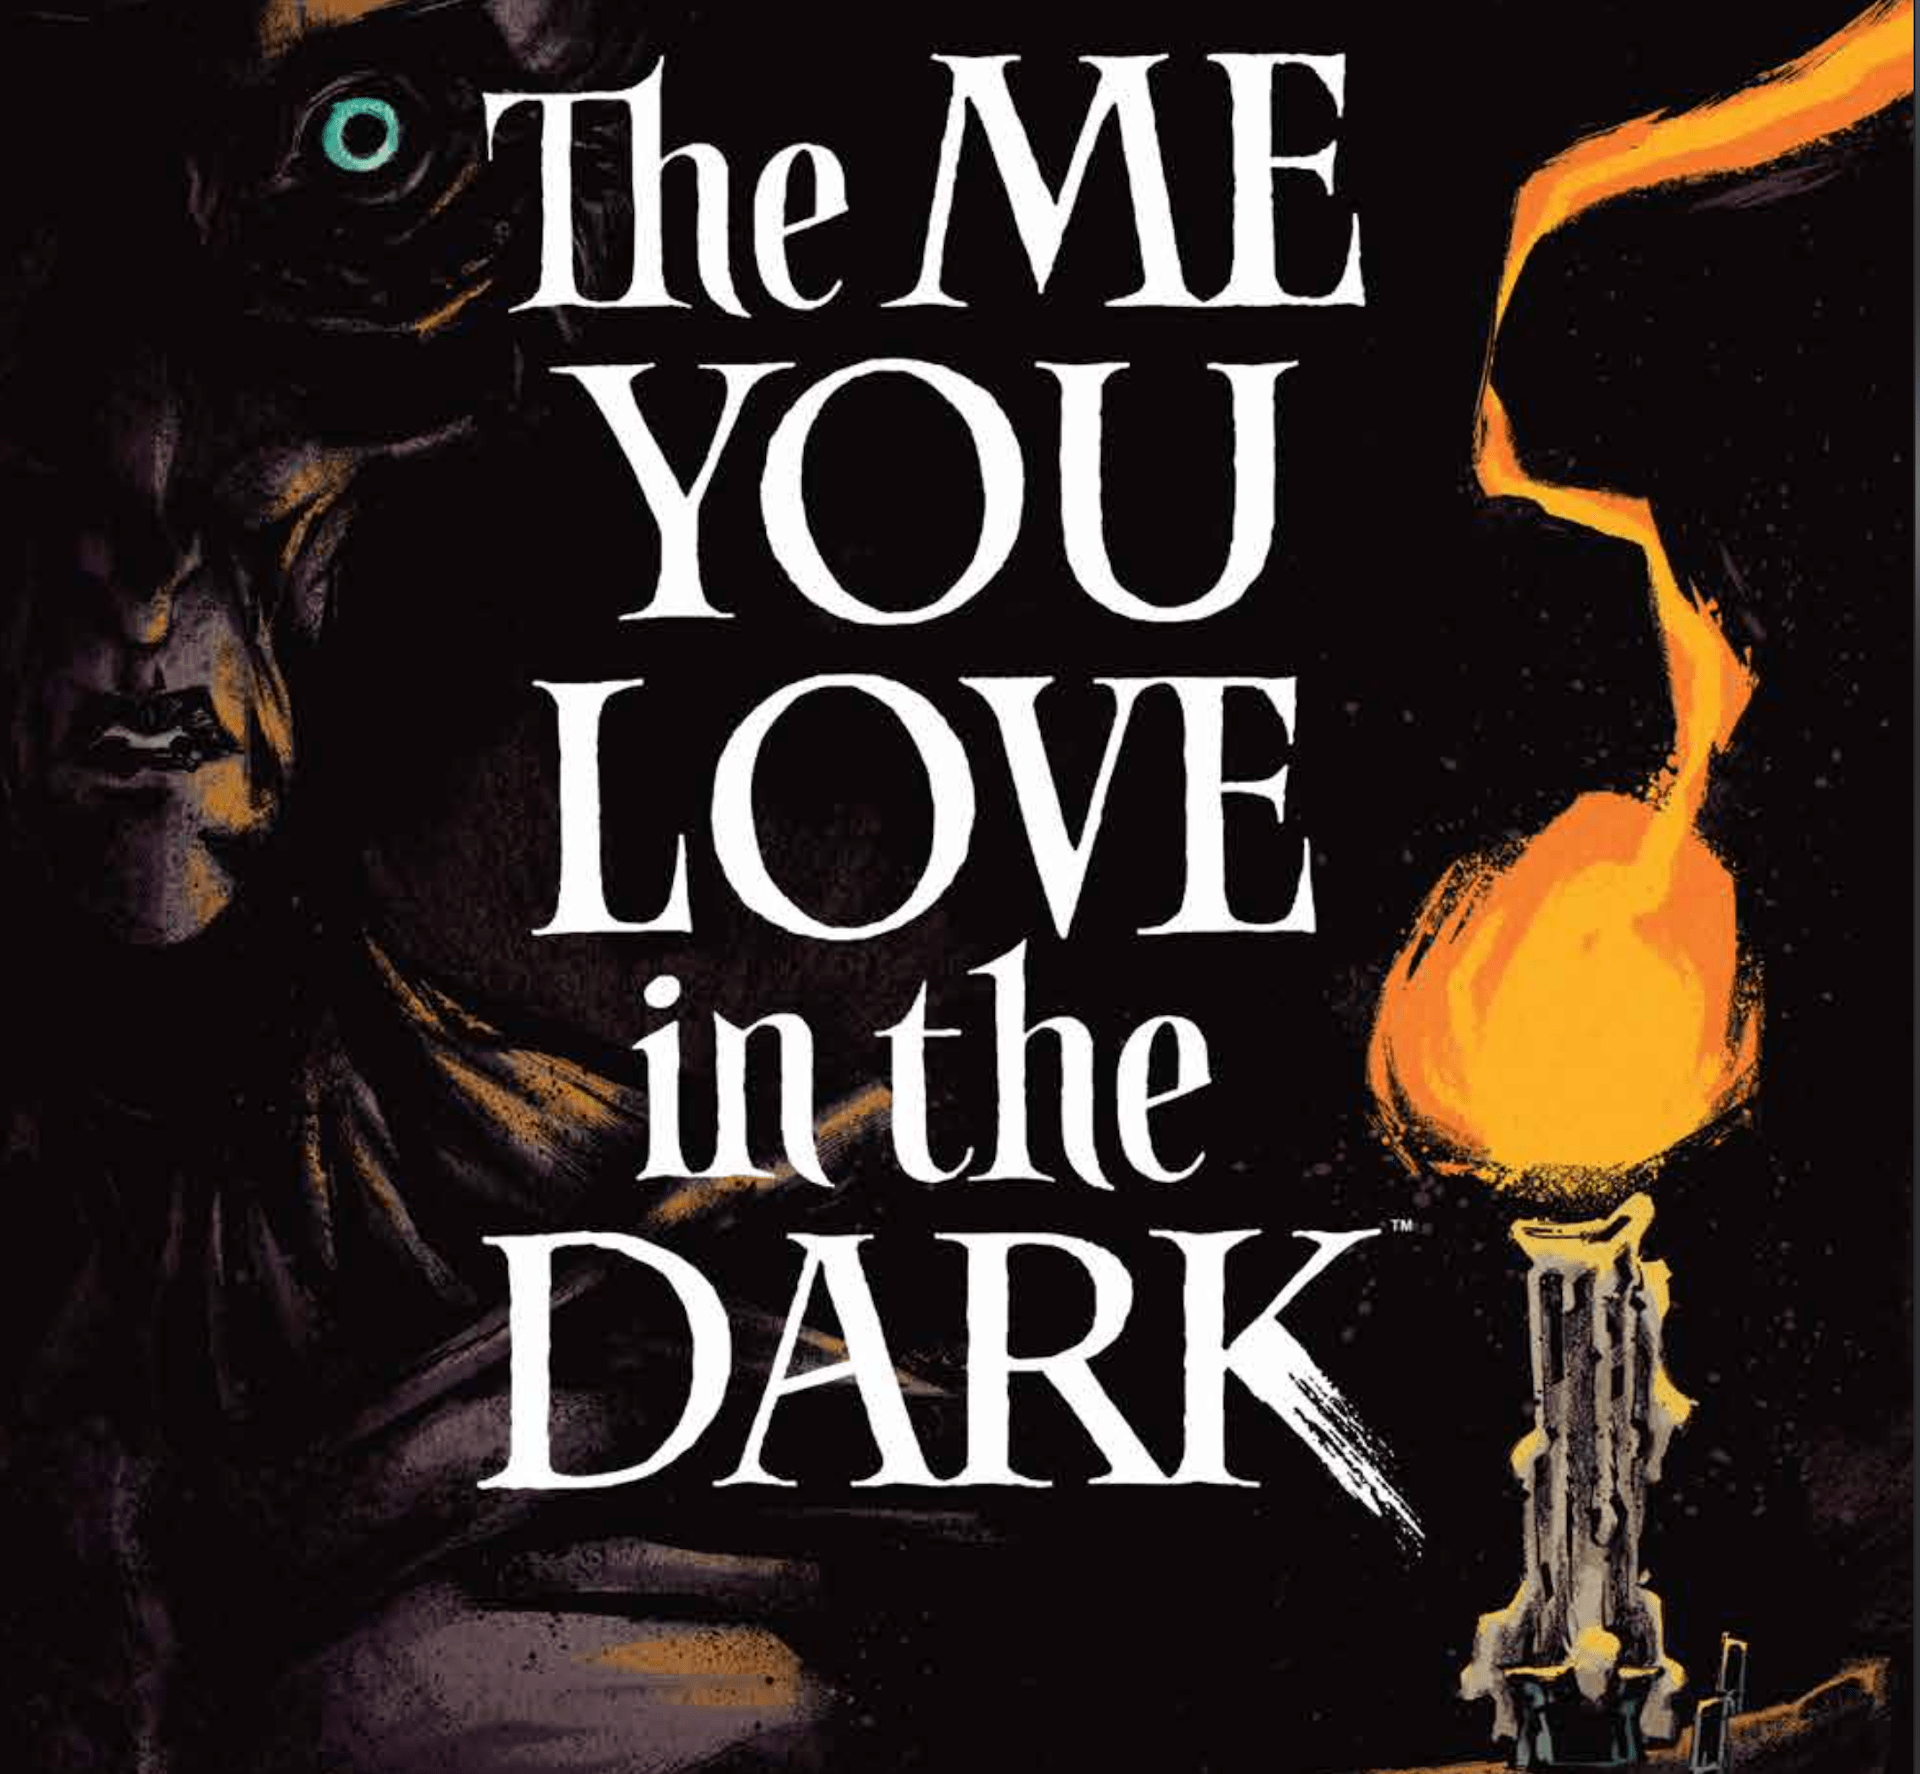 'The Me You Love in the Dark' #2 improves upon the strong first issue